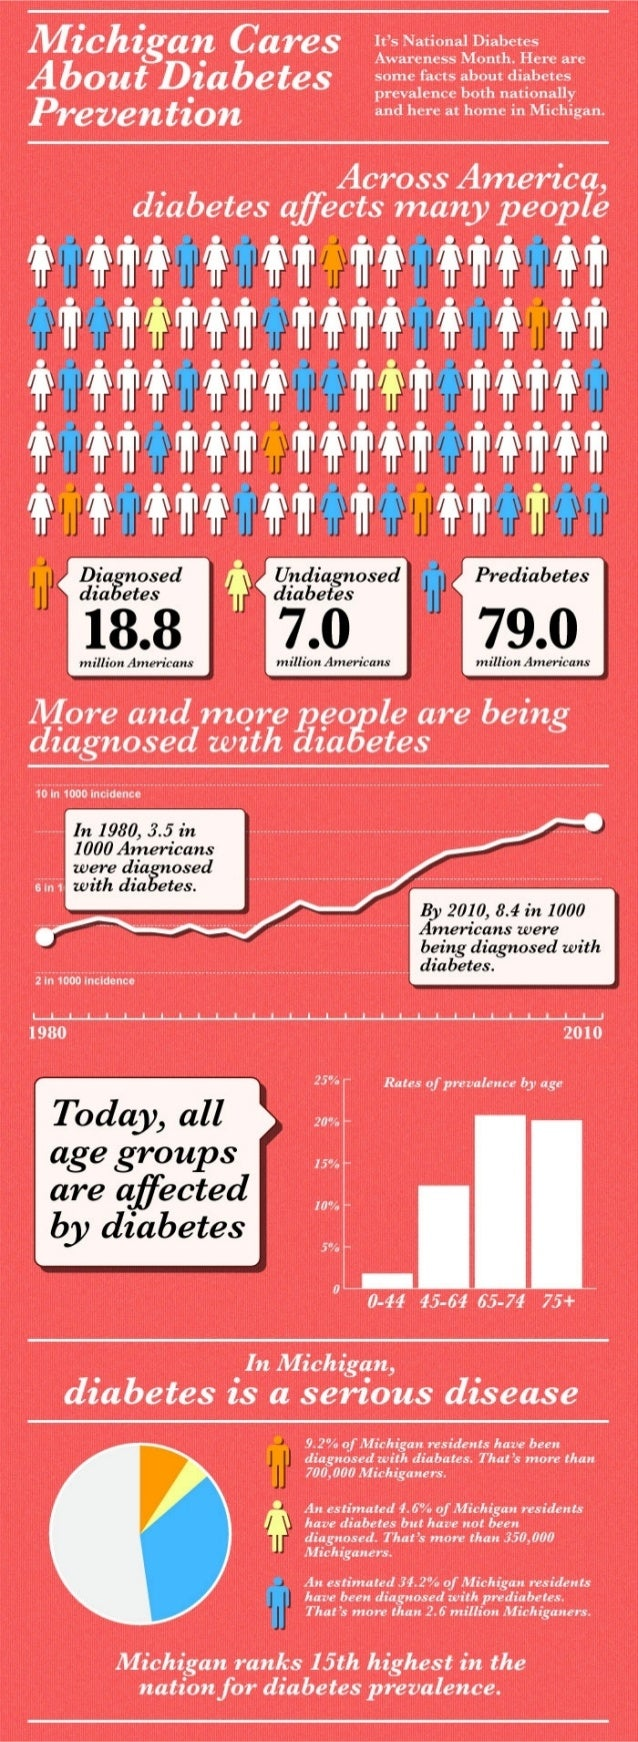 Michigan cares about diabetes prevention